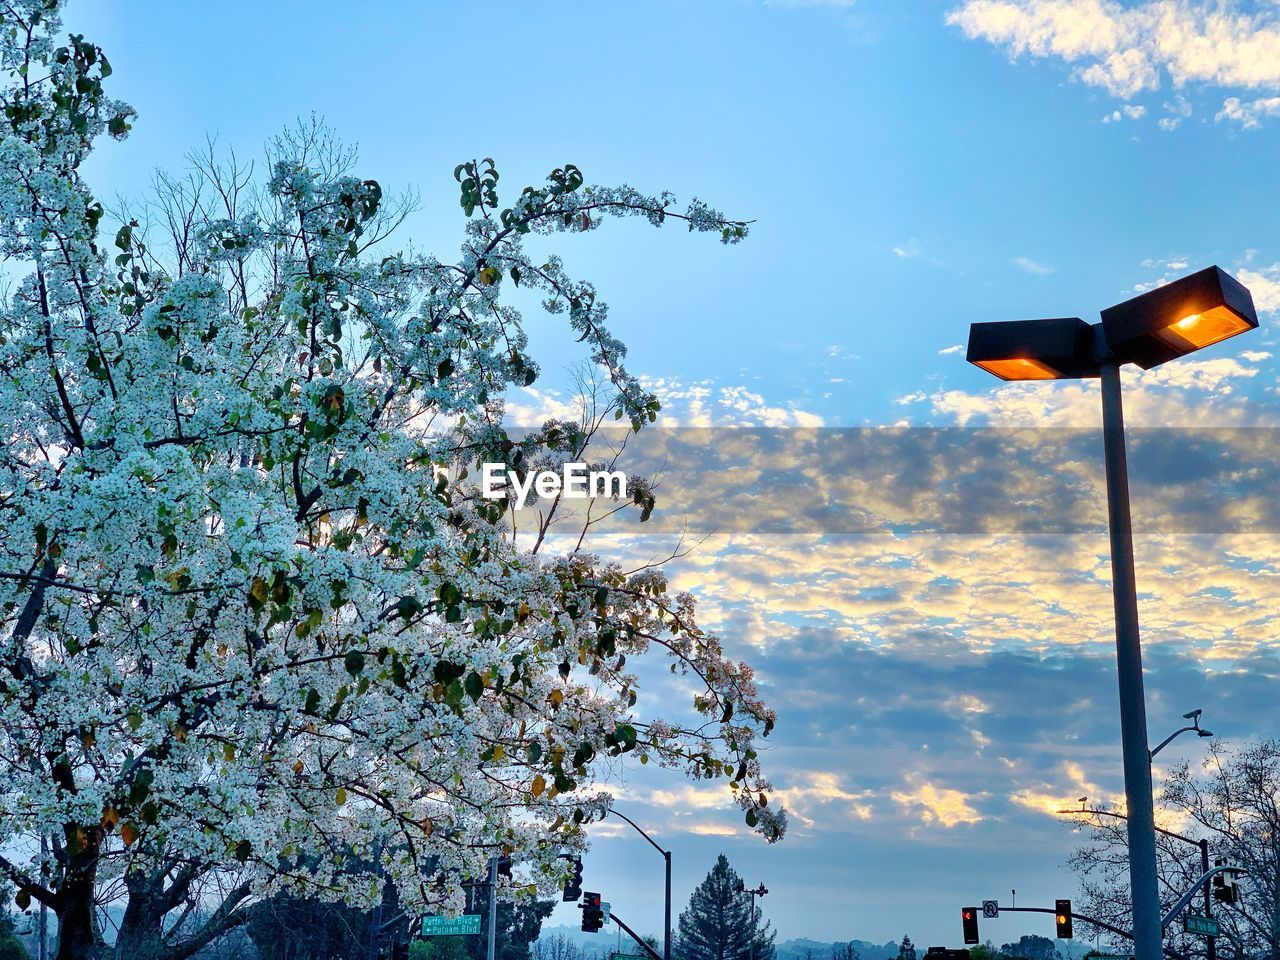 tree, sky, low angle view, plant, lighting equipment, cloud - sky, nature, growth, no people, beauty in nature, flowering plant, branch, flower, outdoors, light, street, blossom, day, freshness, street light, springtime, cherry blossom, electric lamp